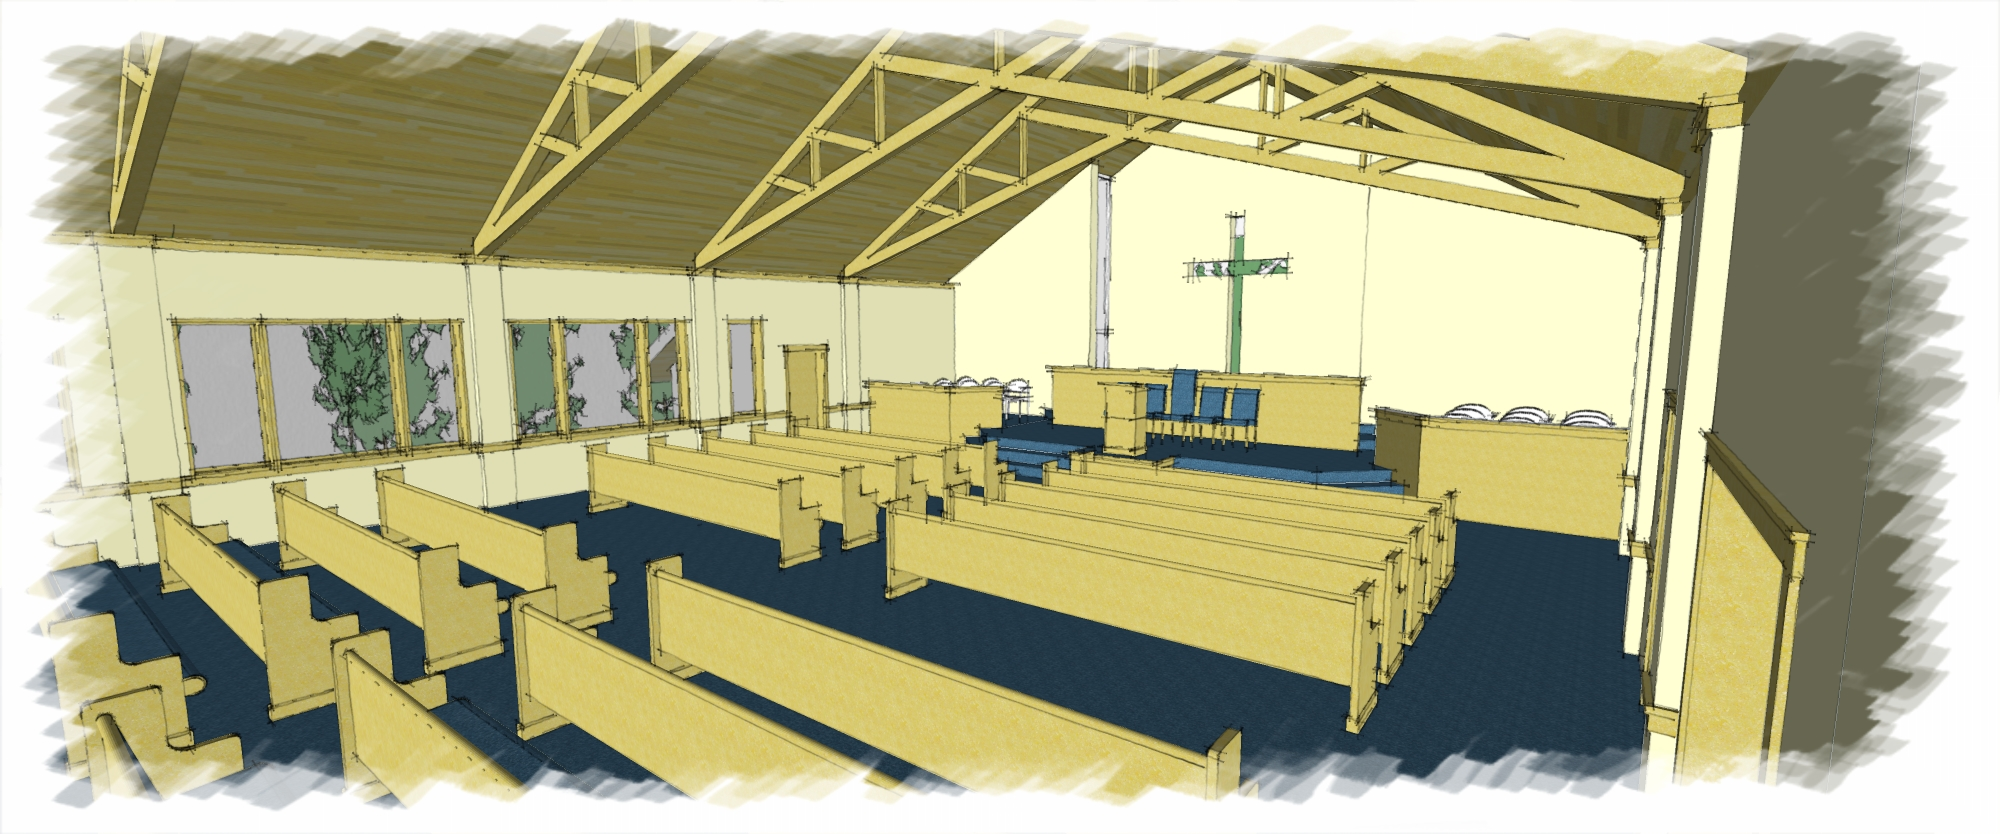 Sanctuary Rendering